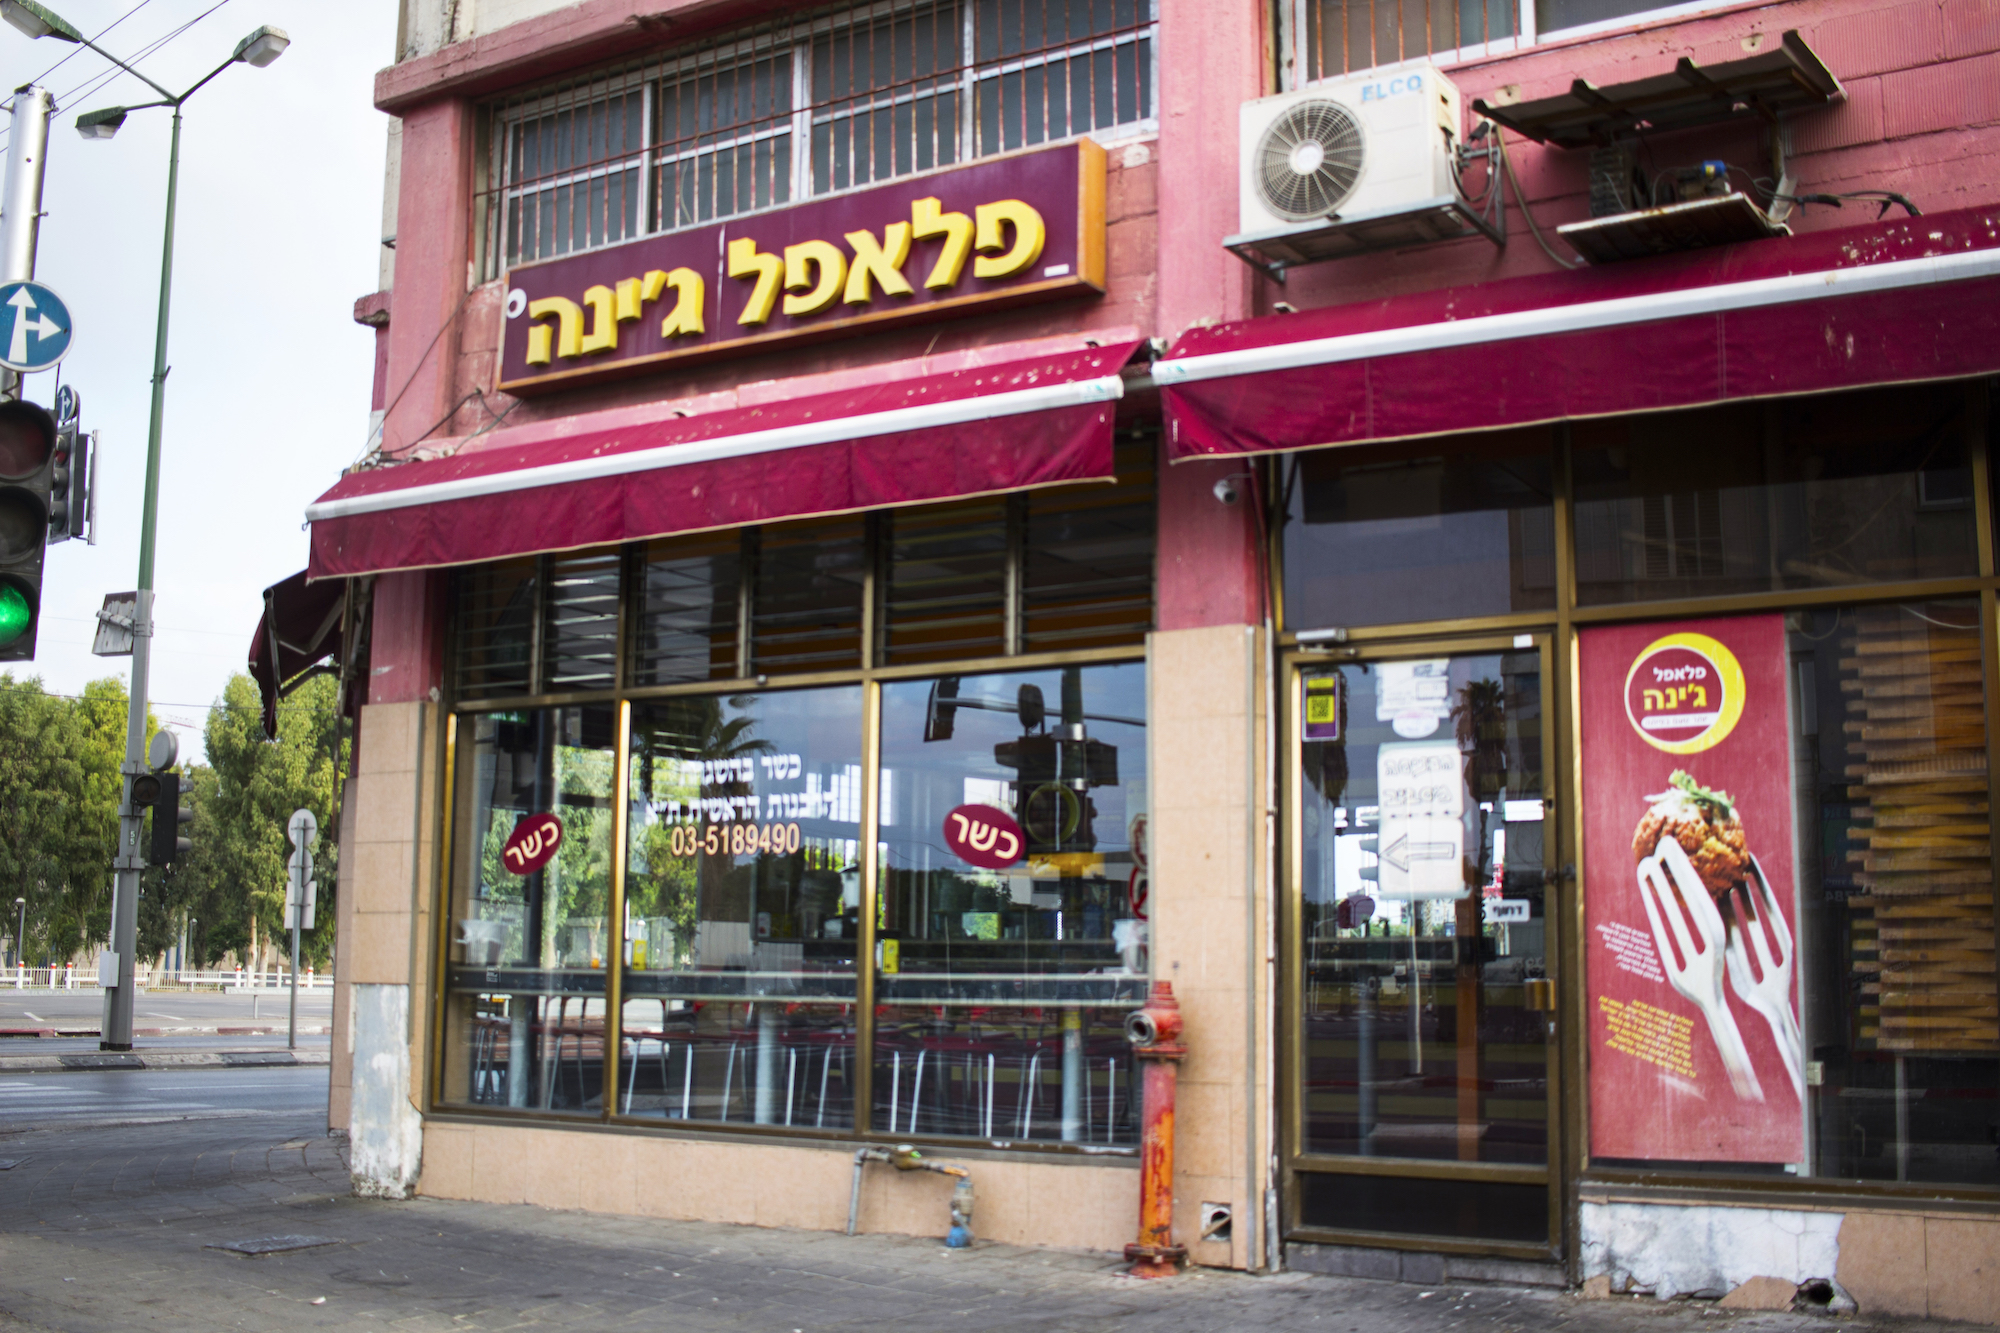 פלאפל ג'ינה (Geena Falafel) in Tel Aviv, Israel. See more #travel photography by Geena Matuson at thegirlmirage.com.